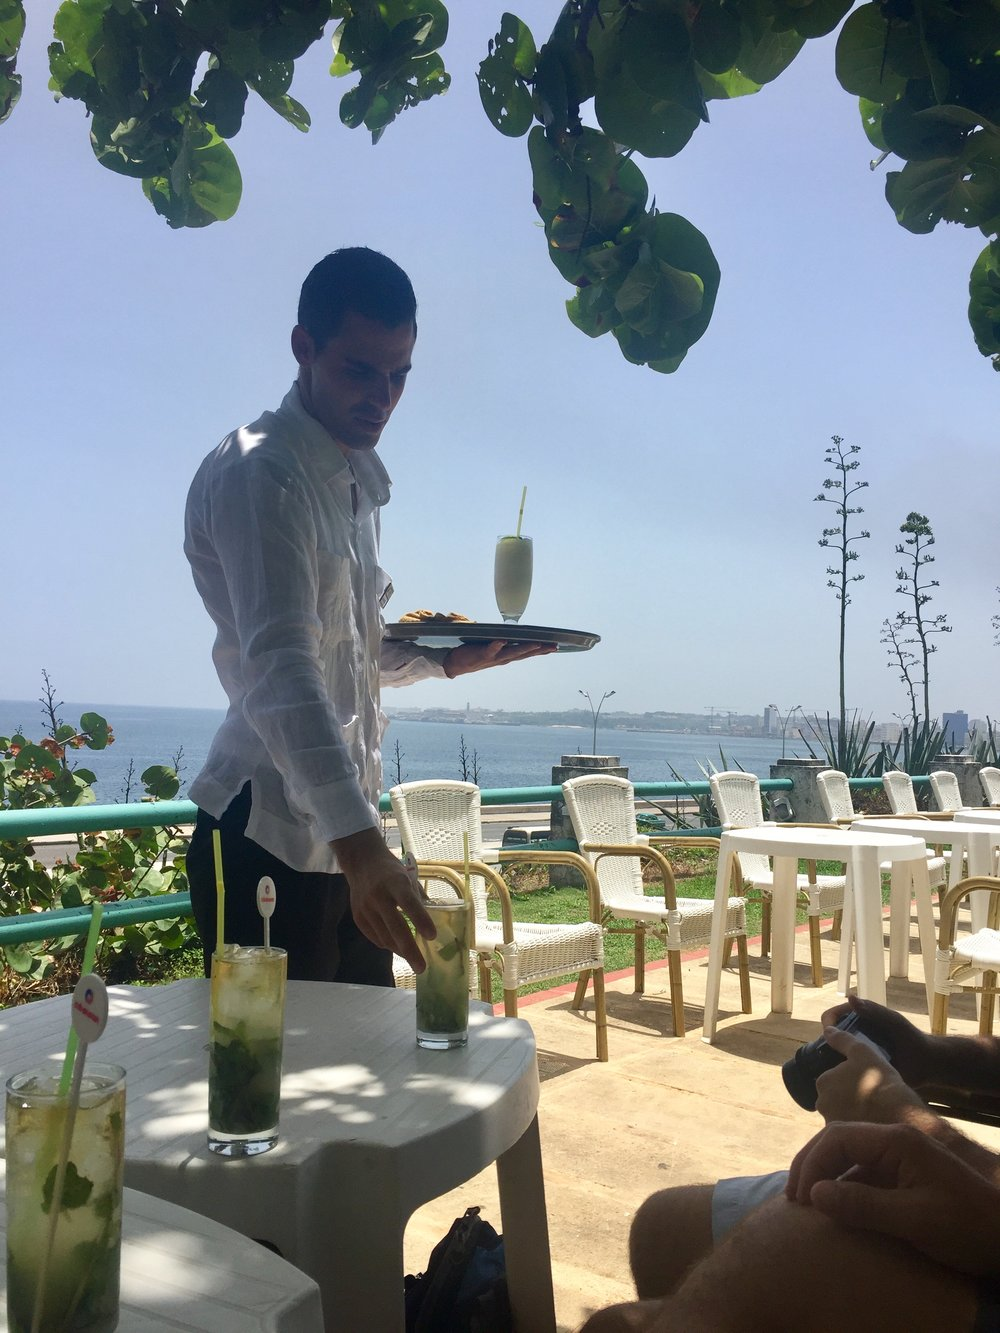 Many of you have asked where to get the best Mojito in Havana. Hotel Nacional de Cuba is a great place to start your search!